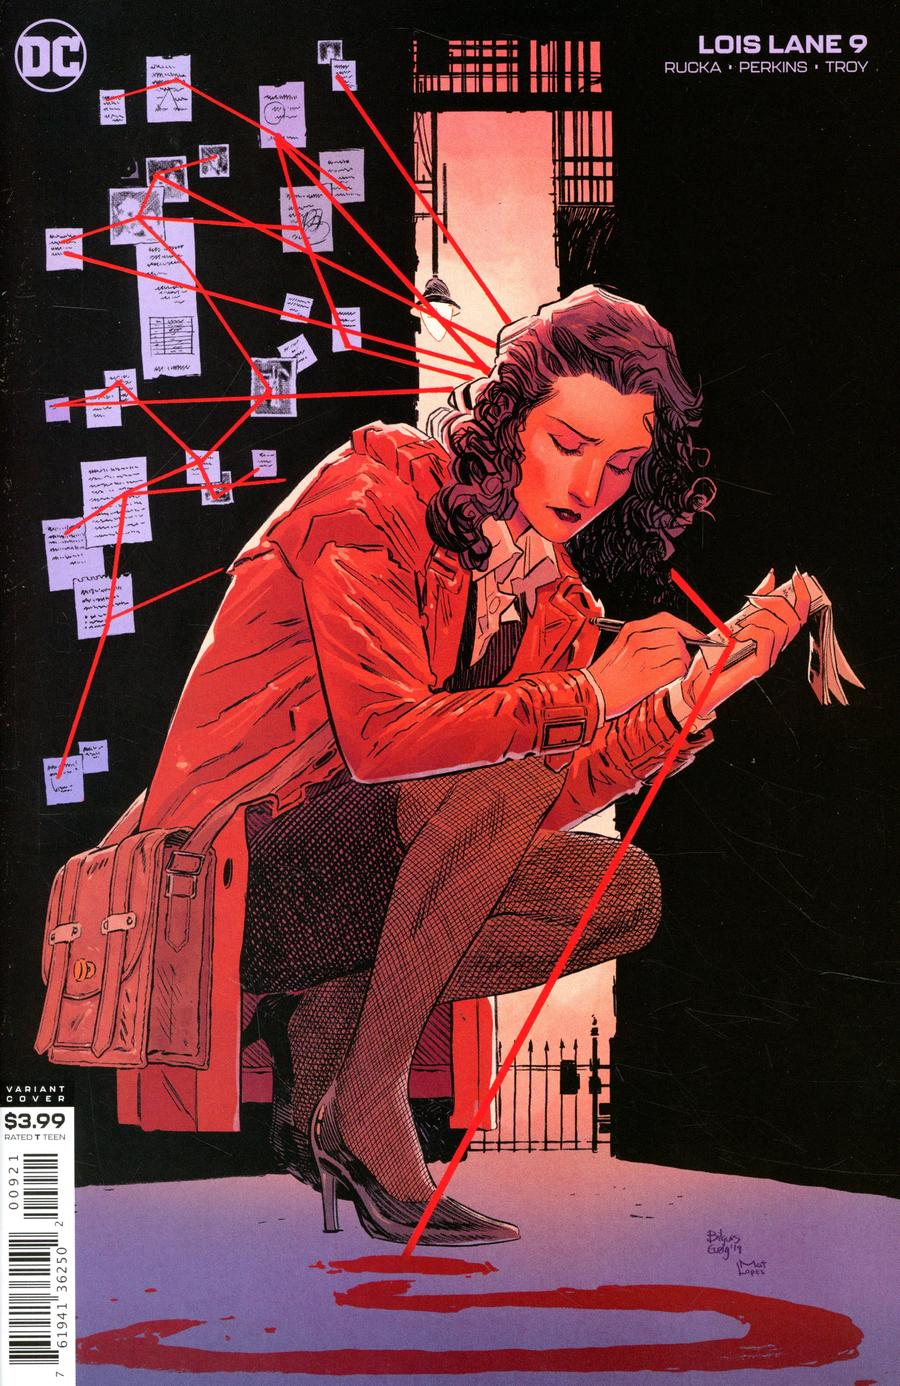 Lois Lane Vol 2 #9 Cover B Variant Bilquis Evely Cover